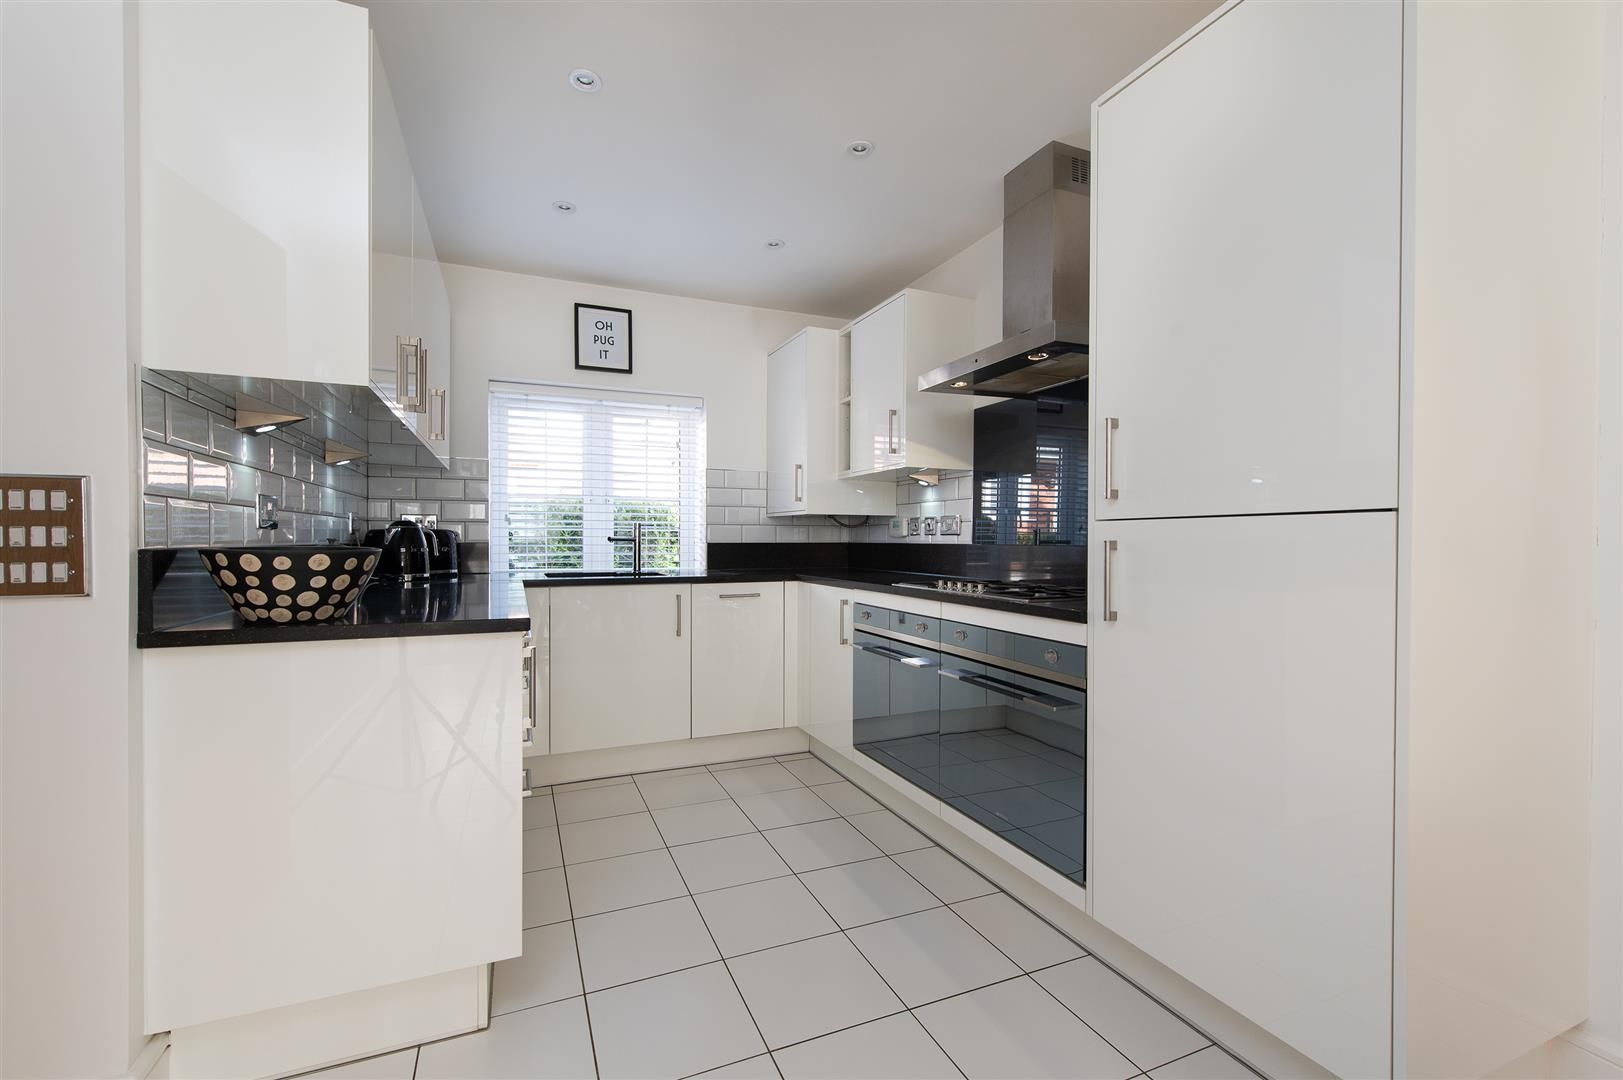 3 bed detached for sale in Hagley  - Property Image 9